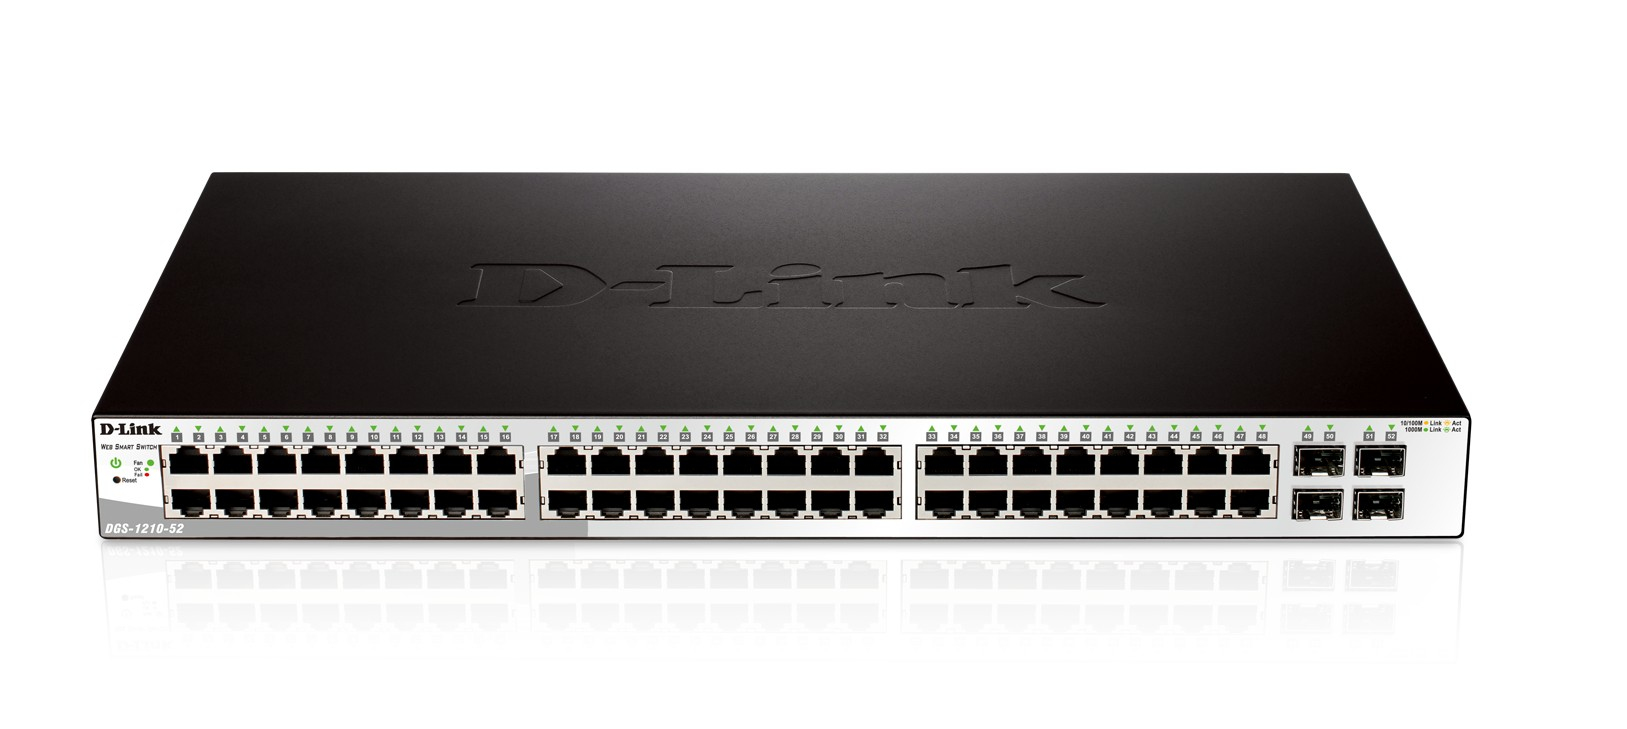 D-Link DGS-1210-52 network switch